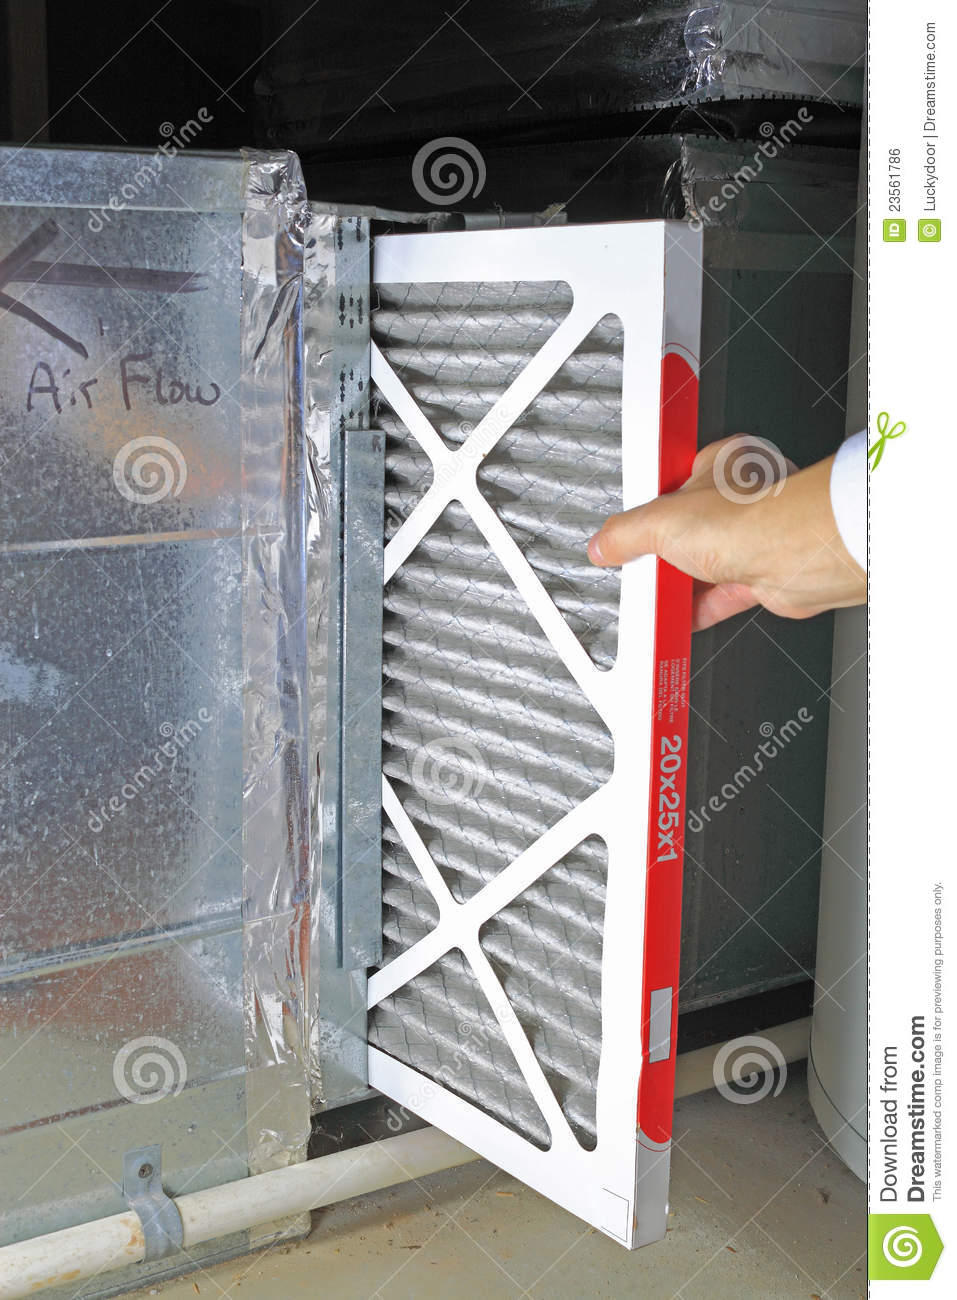 Replace Air Filter Stock Photo Image Of Clean Health